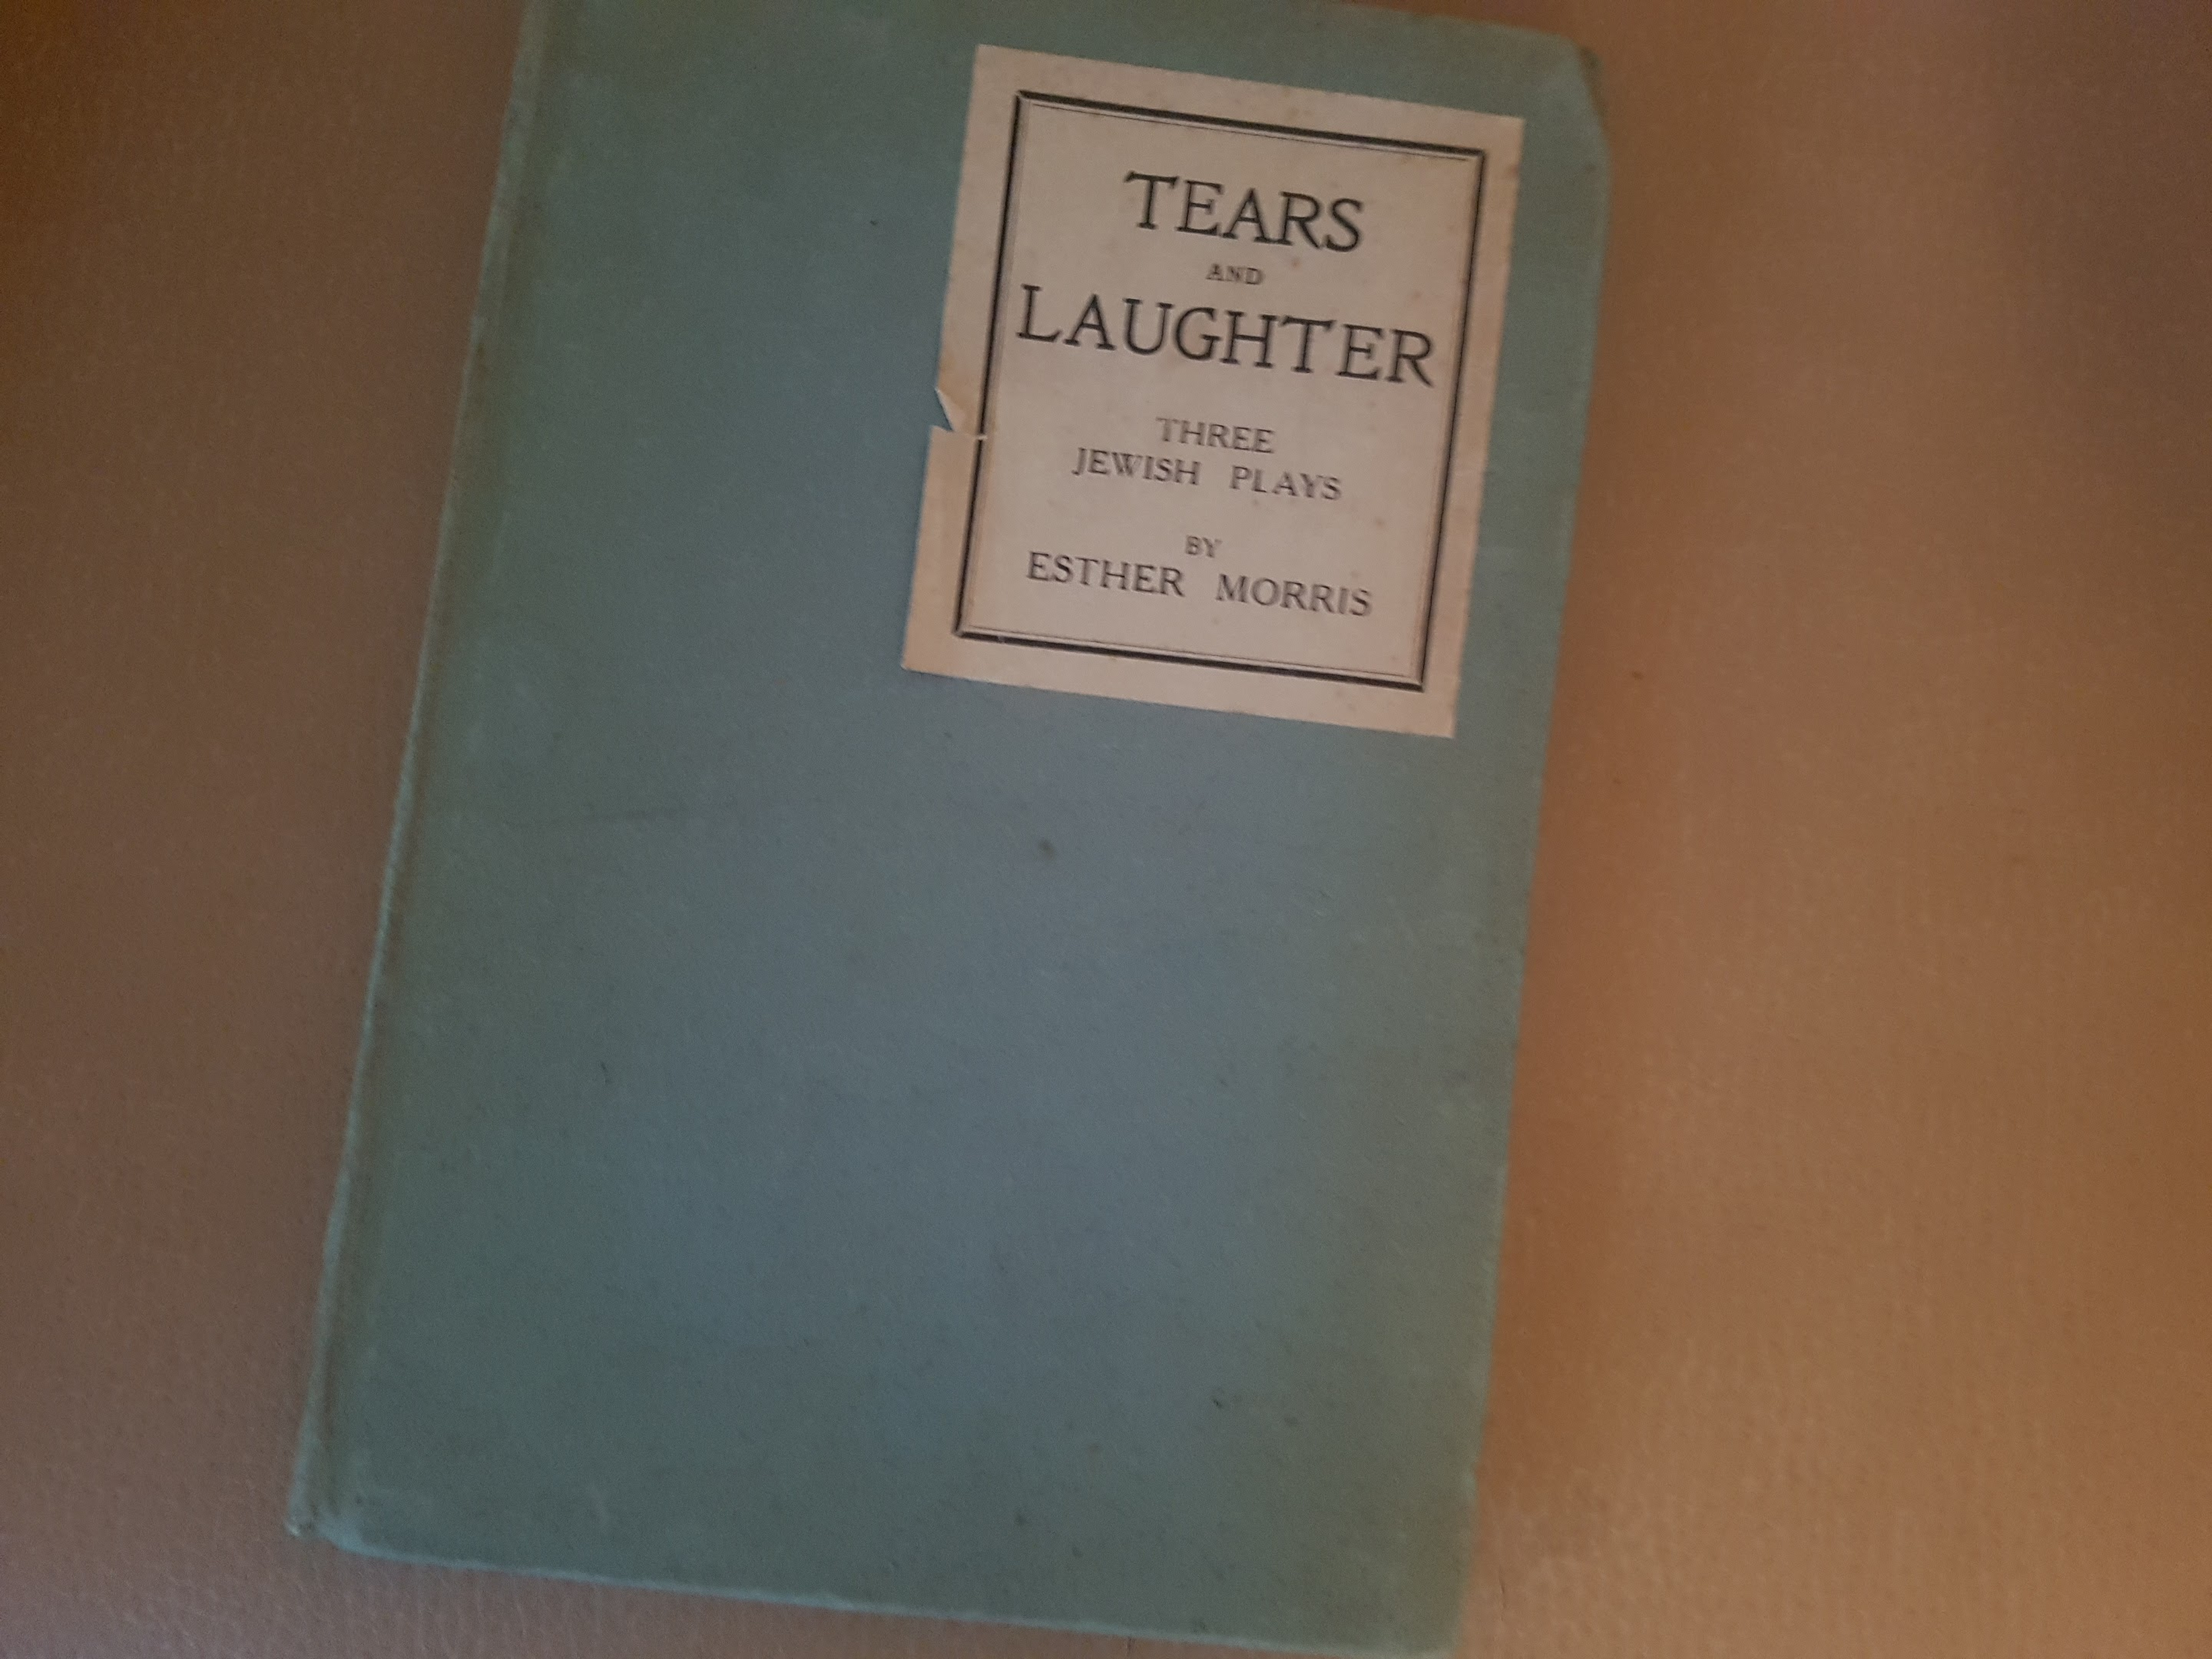 Tears of Laughter – My great grandmother's book